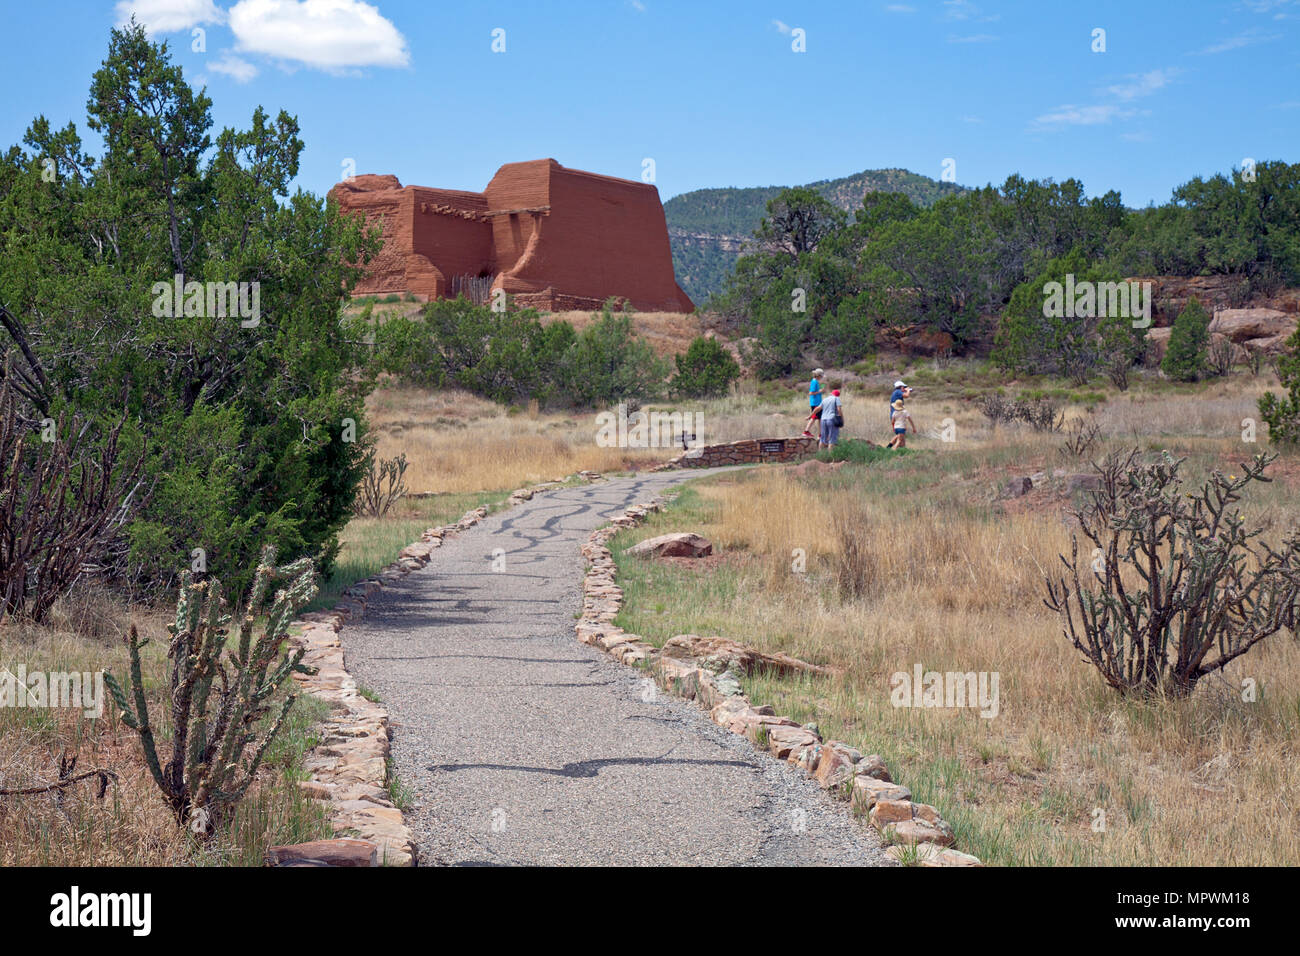 A family follows the Missions Ruins Trail at Pecos National Historical Park in San Miguel and Santa Fe counties, New Mexico. Day trip from Santa Fe. - Stock Image